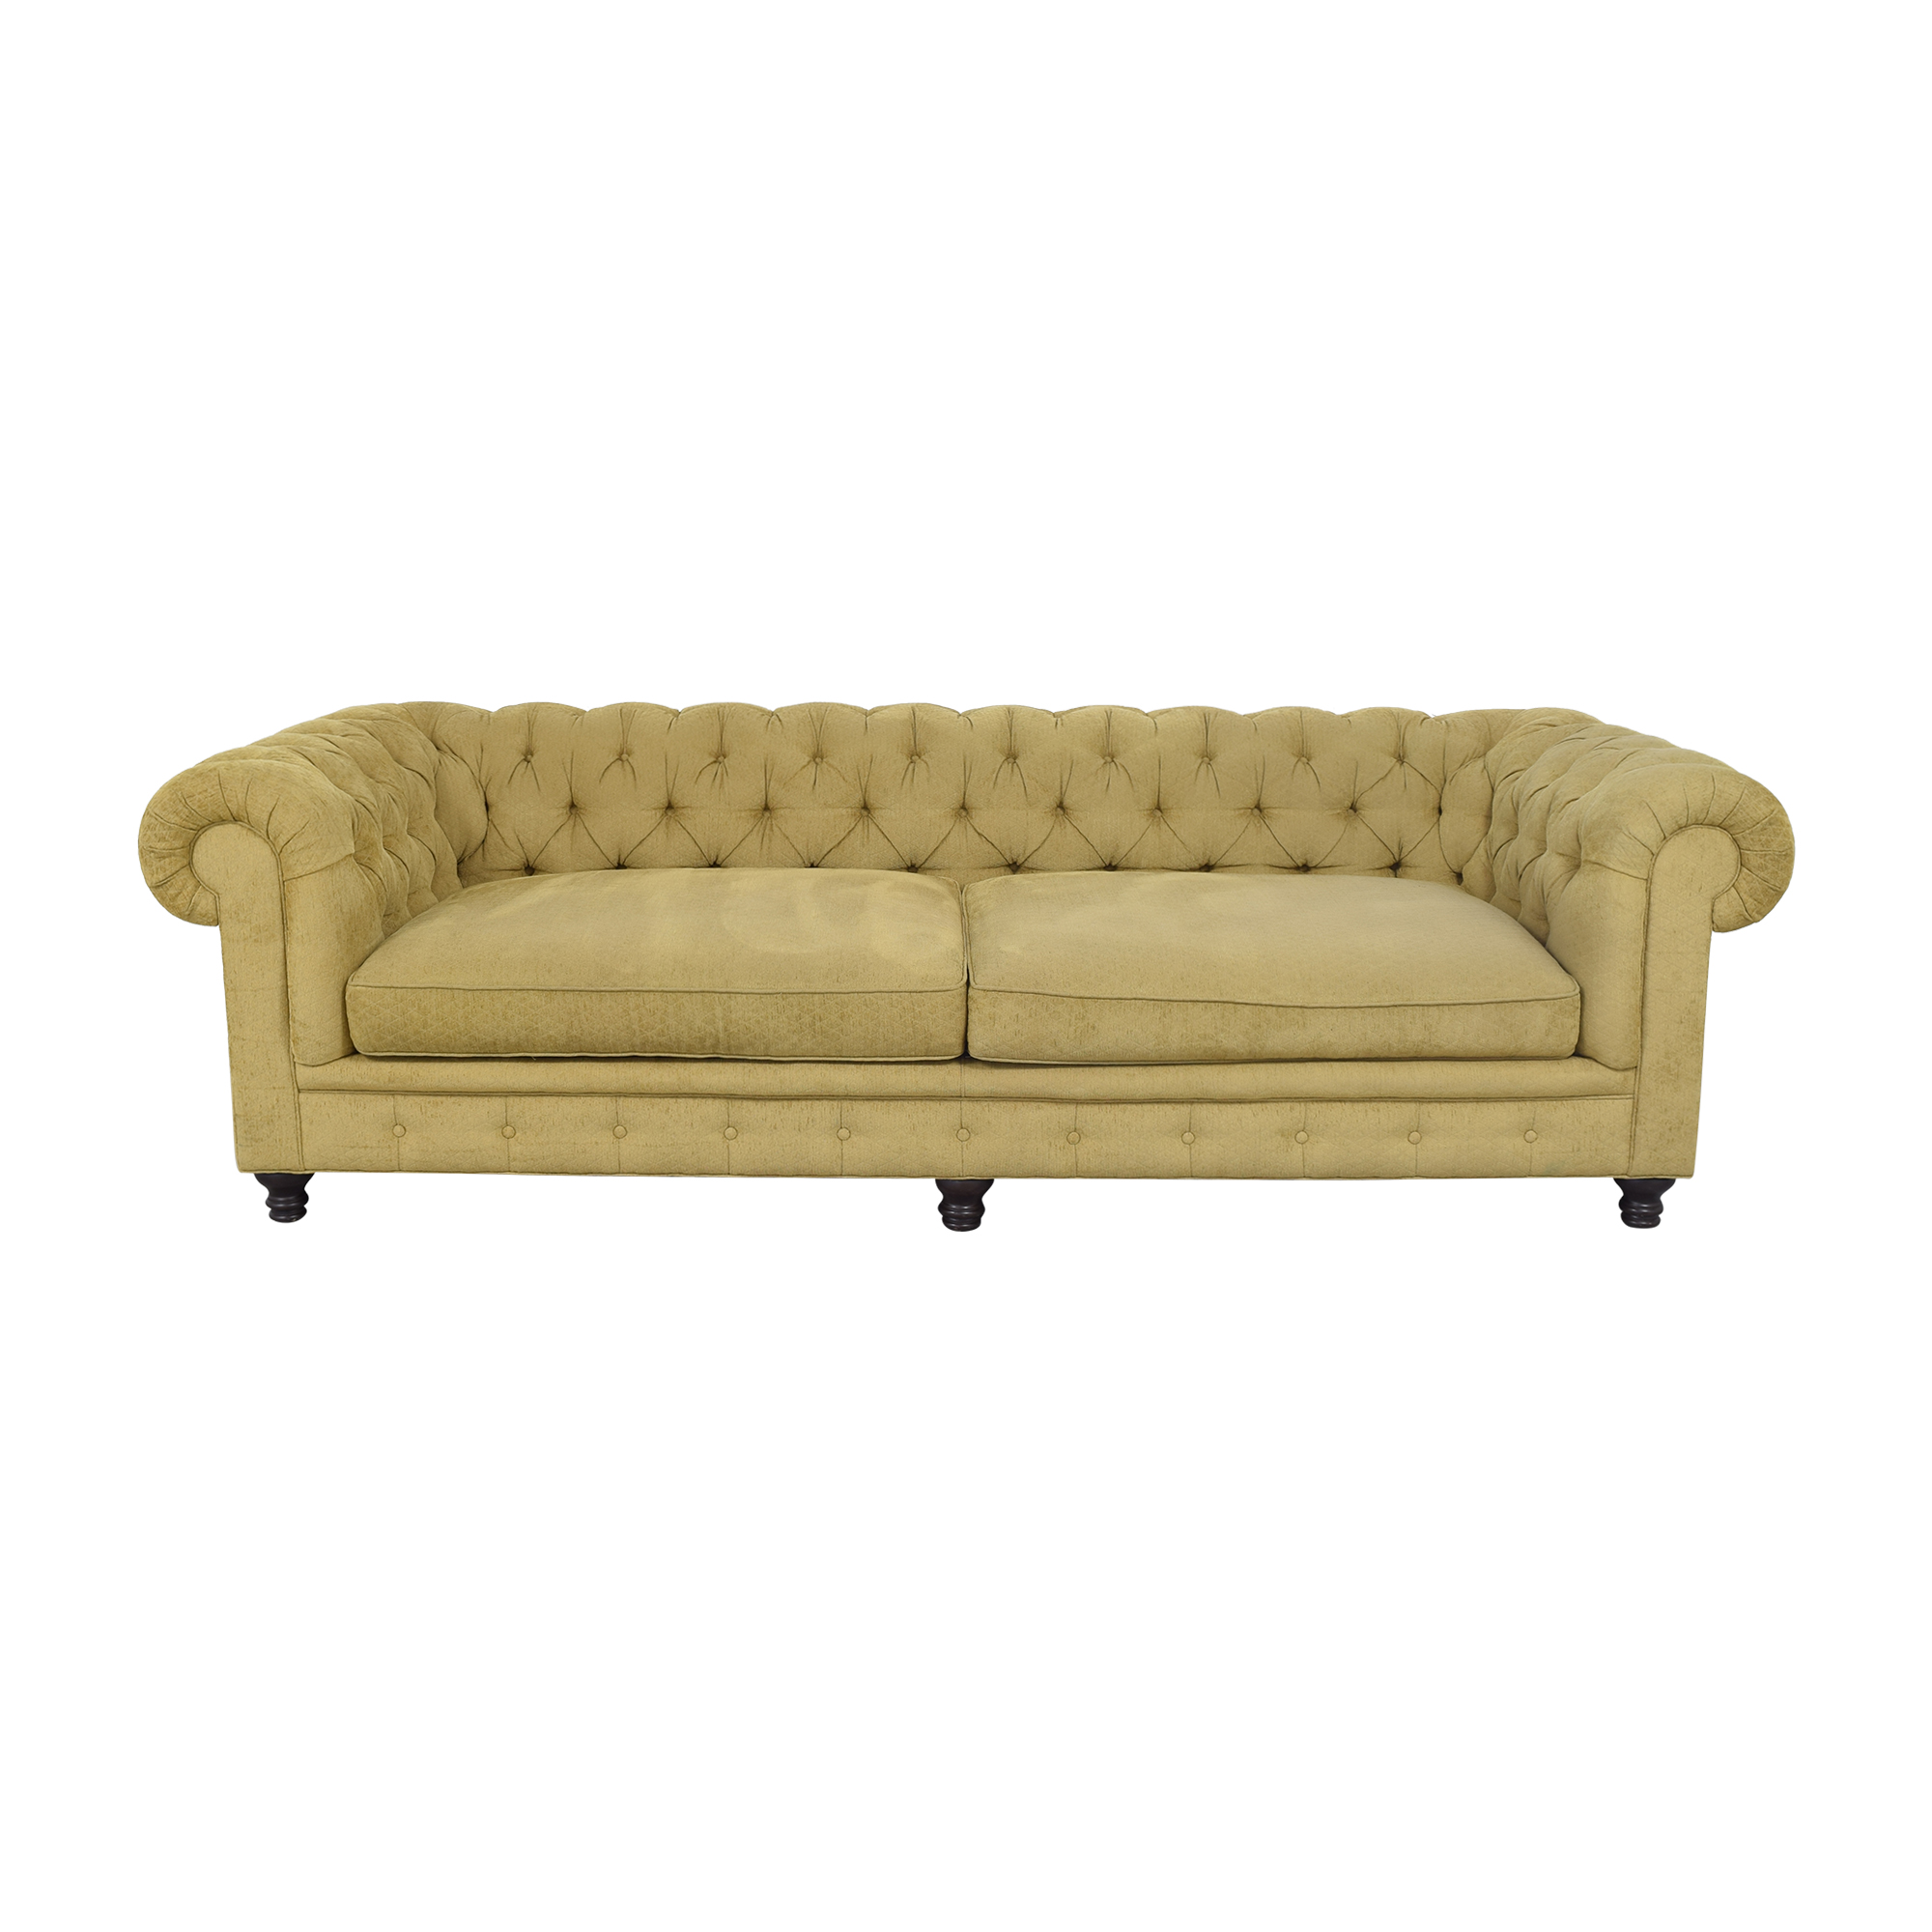 Arhaus Chesterfield Sofa / Sofas